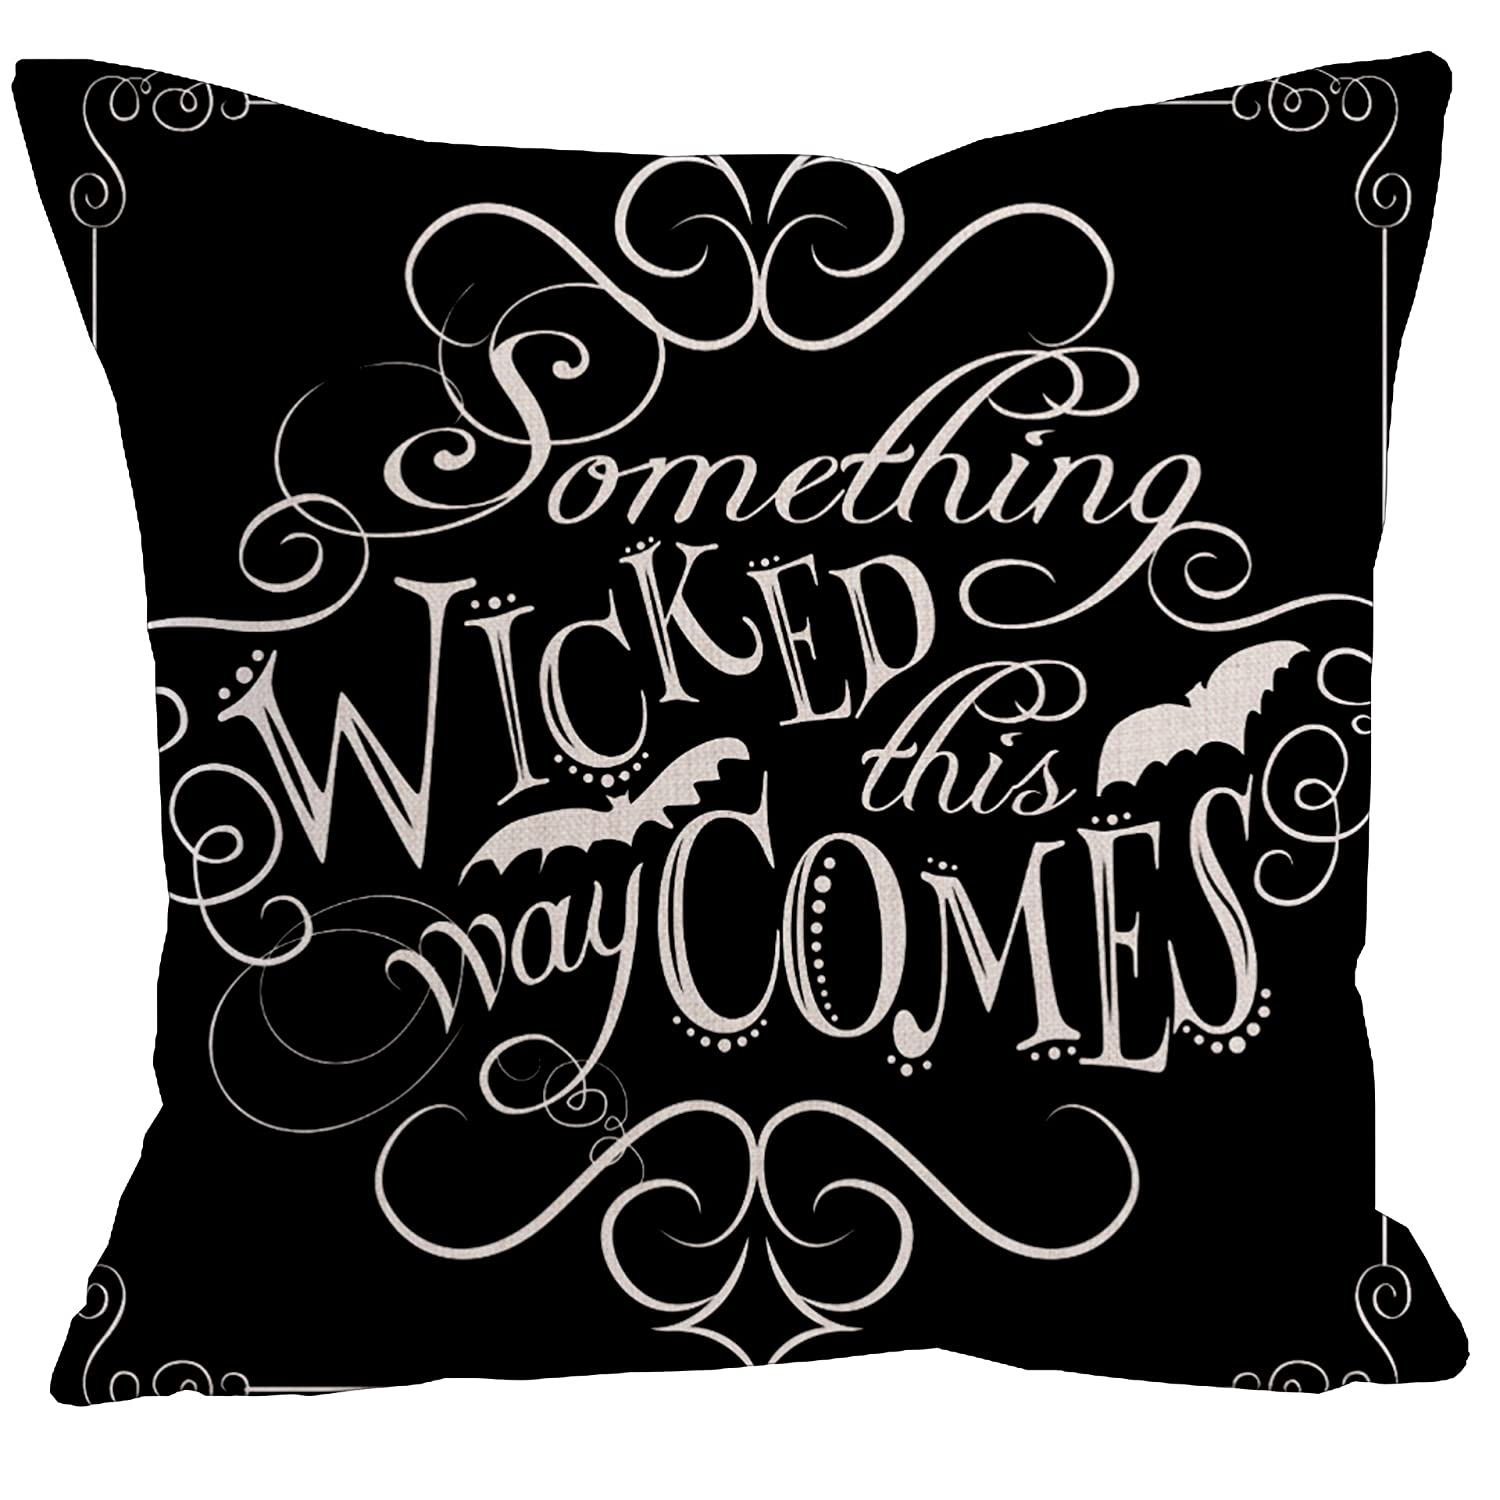 KACOPOL Stay Weird Funny Quote Throw Pillow Covers Cotton Linen Home Decorative Throw Pillow Case Cushion Cover Words Square 18 x 18 Stay Weird